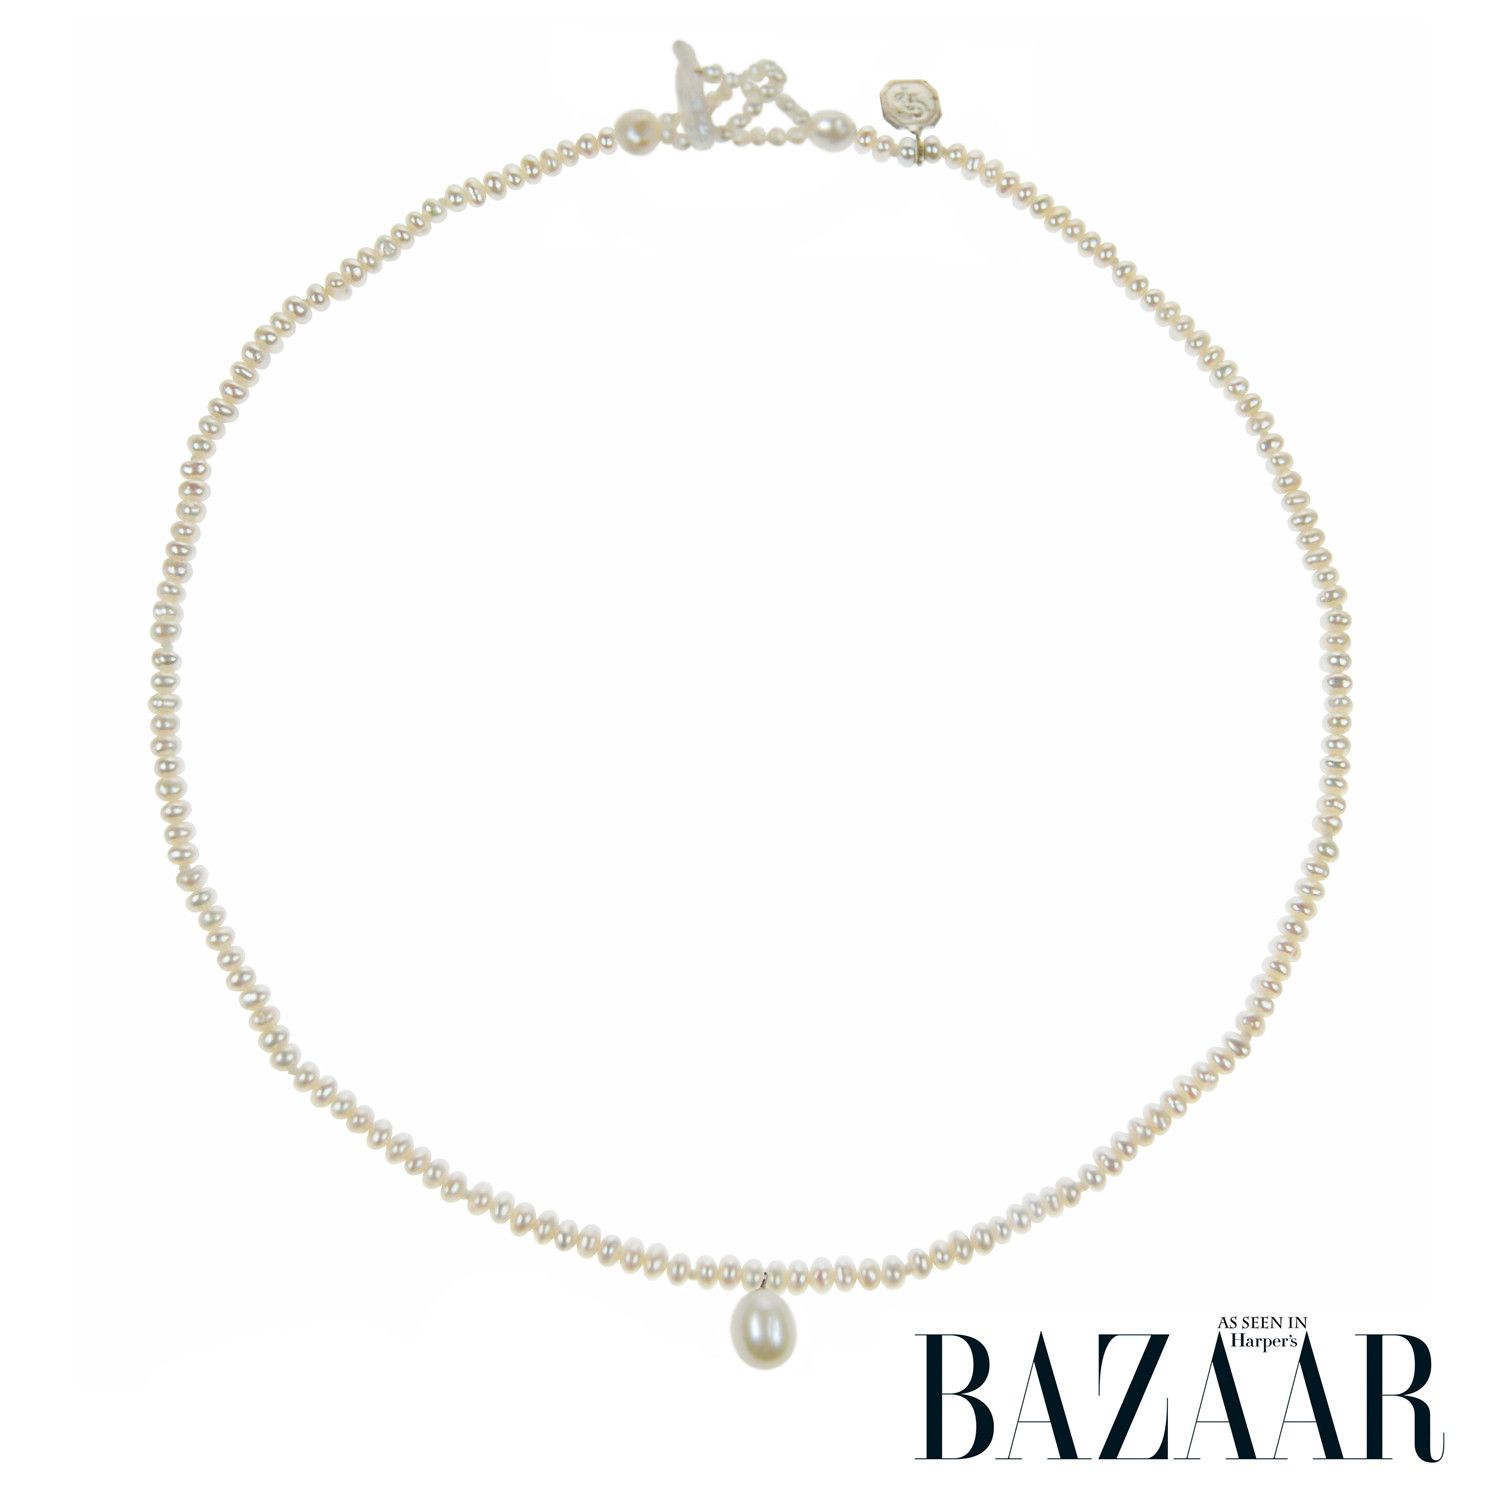 0578528a0 Single Strand Seed Pearl Necklace with Pearl Drop from Coleman Douglas  Pearls